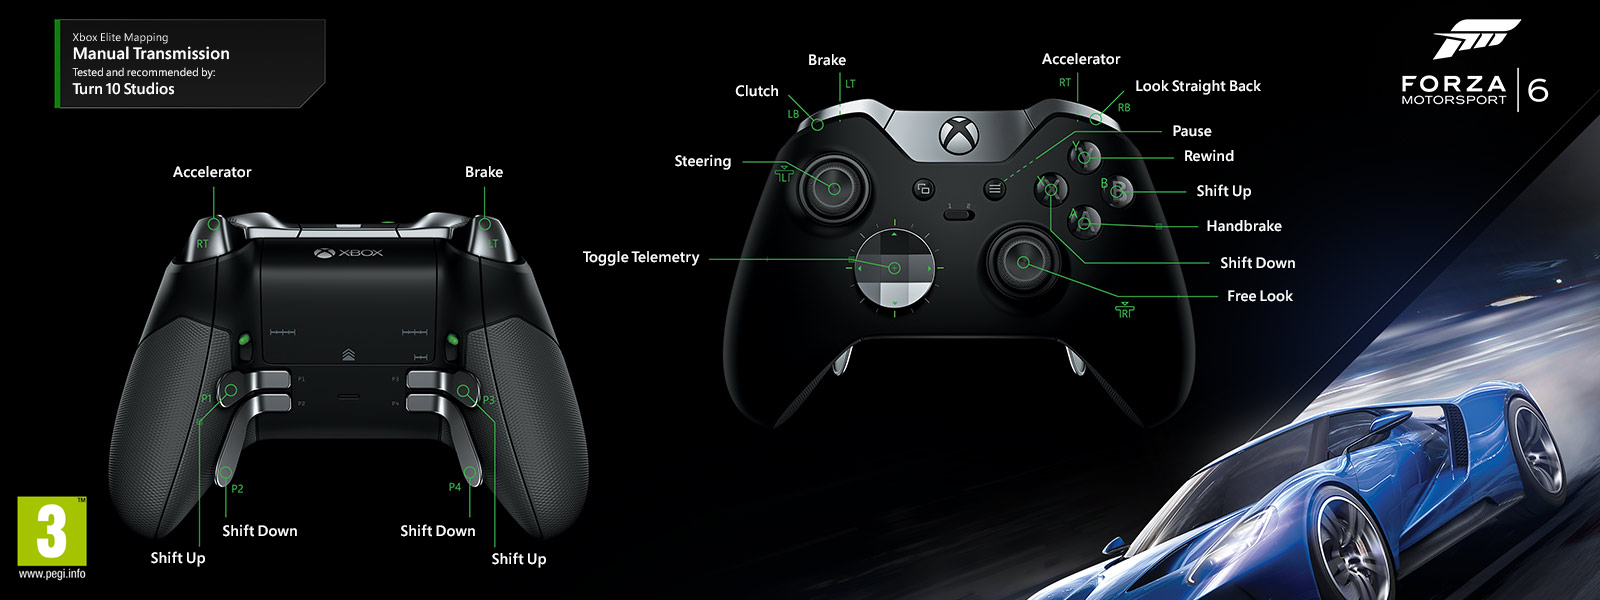 Forza Motorsport 6 – Manual Transmission Elite Mapping